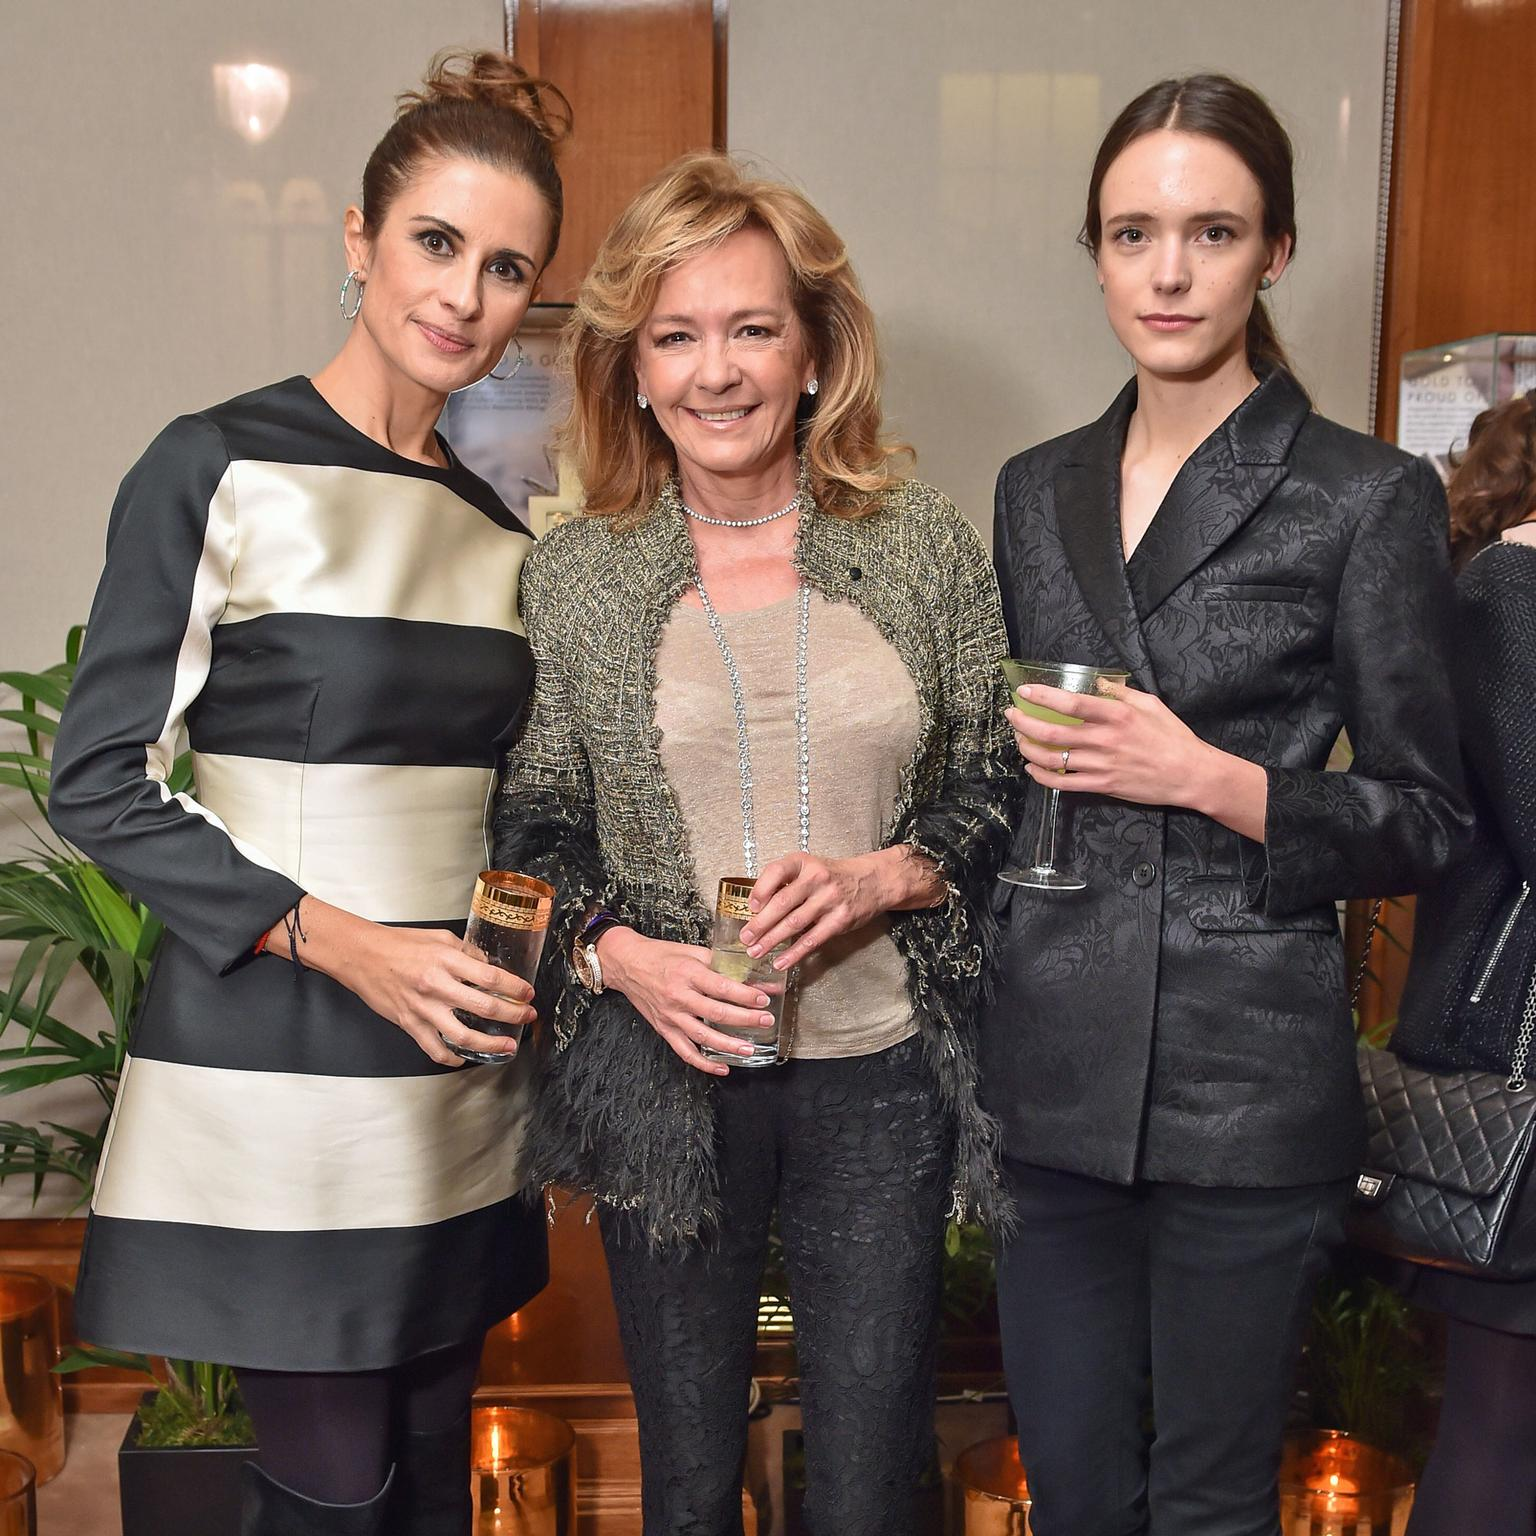 Livia Firth, Caroline Scheufele and actress Stacy Martin